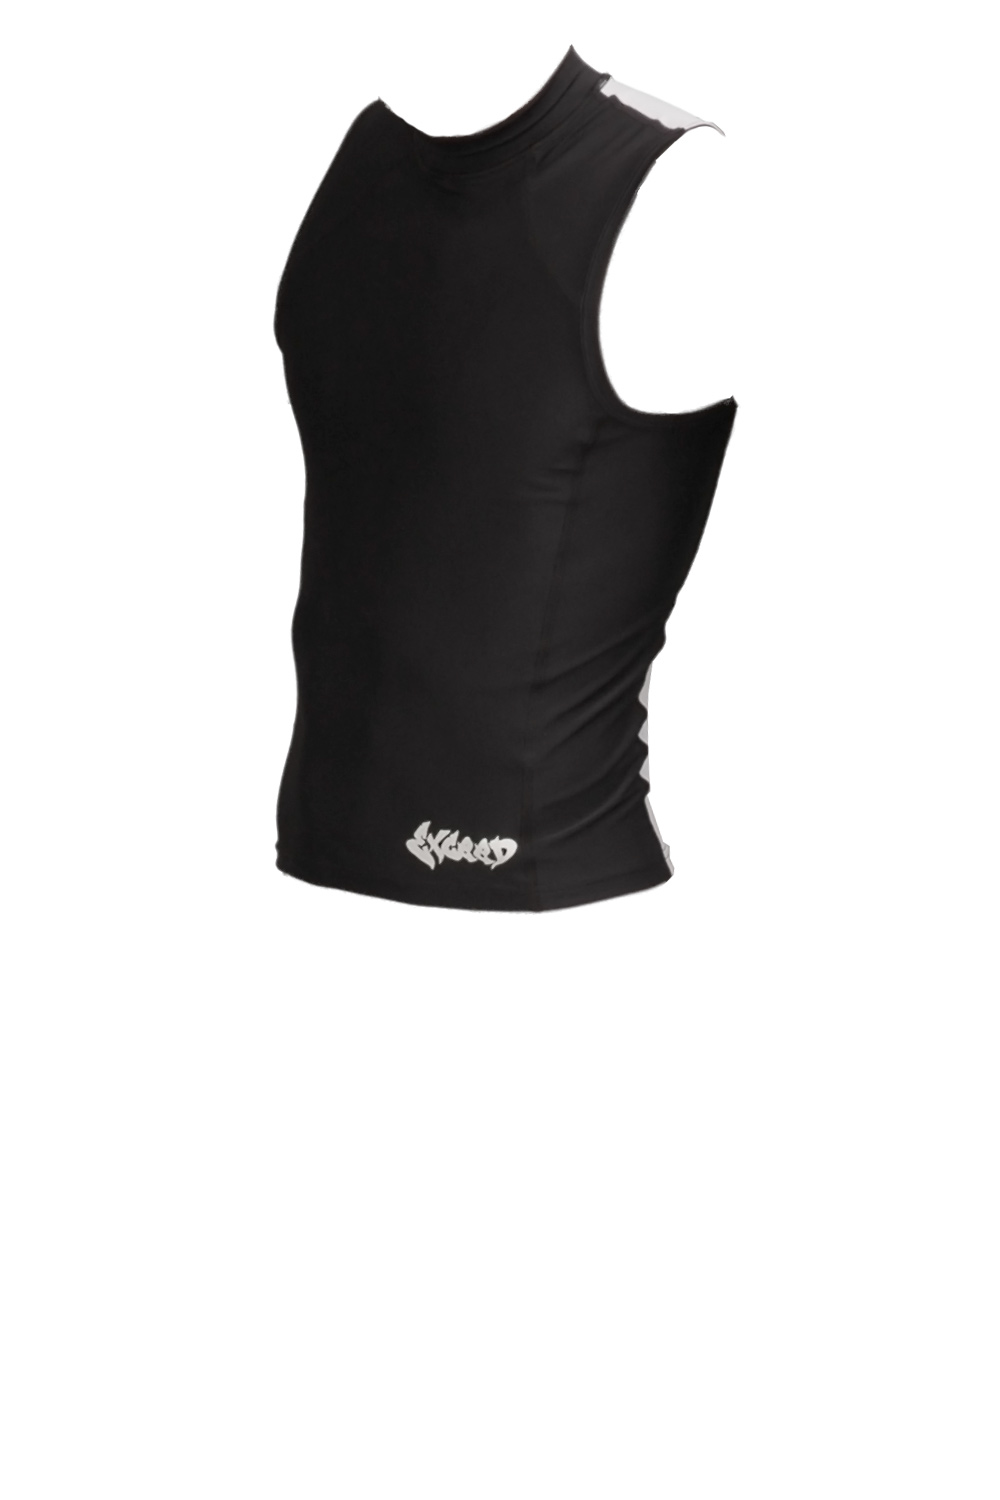 Exceed Entity Mens Sleeveless Rash Guard